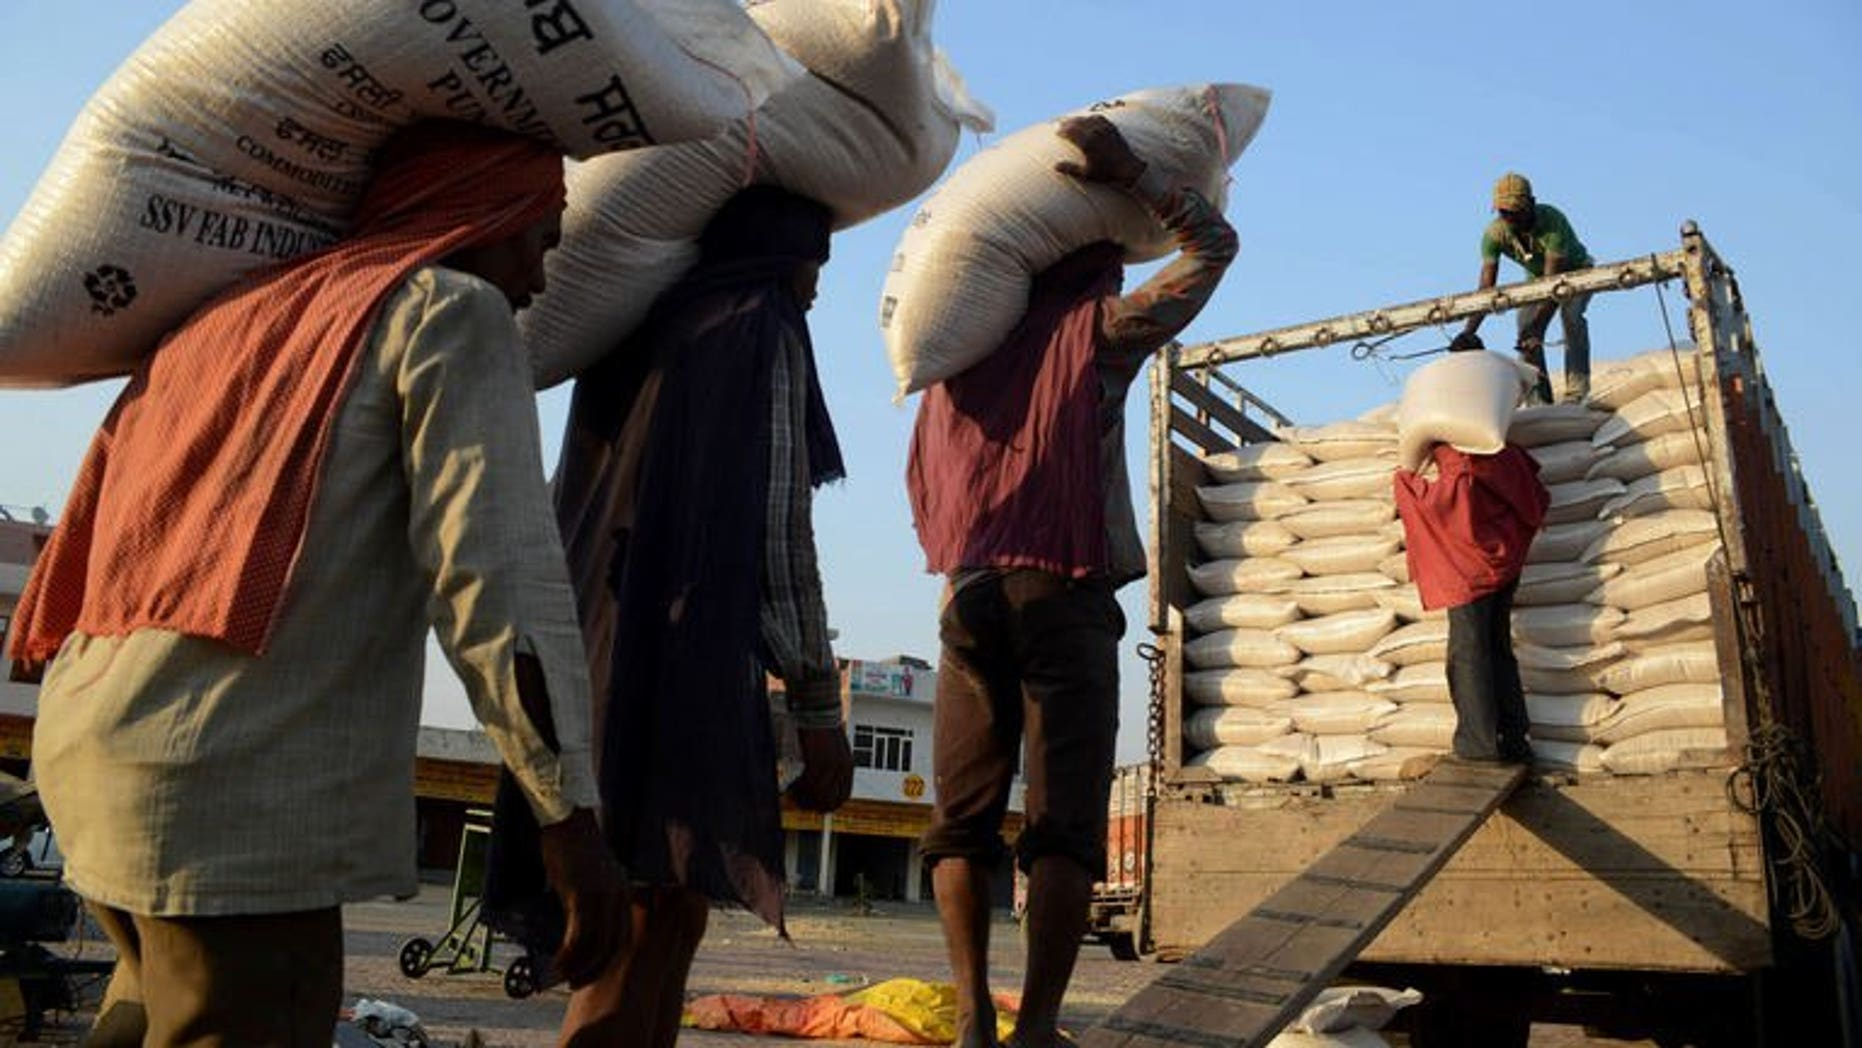 Indian labourers load sacks of wheat onto a truck at a local grain distribution point in the outskirts of Amritsar on May 16, 2013. India's ruling Congress party chief Sonia Gandhi on July 13, 2013, asked states to start rolling out next month a flagship cheap food scheme seen as key to government hopes of winning a third term in office.